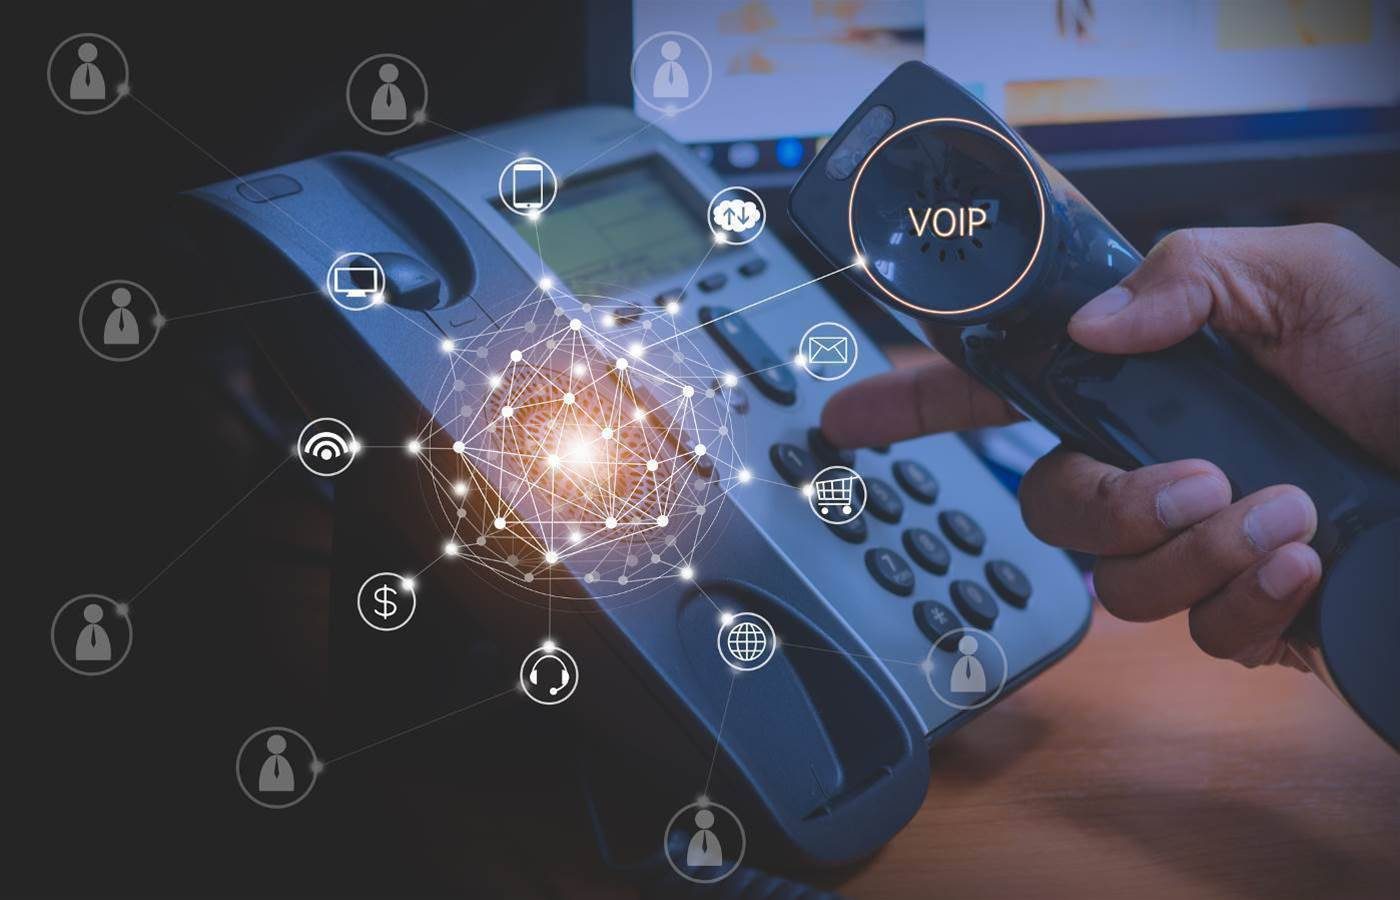 Melbourne telco's VoIP services to go offline this month